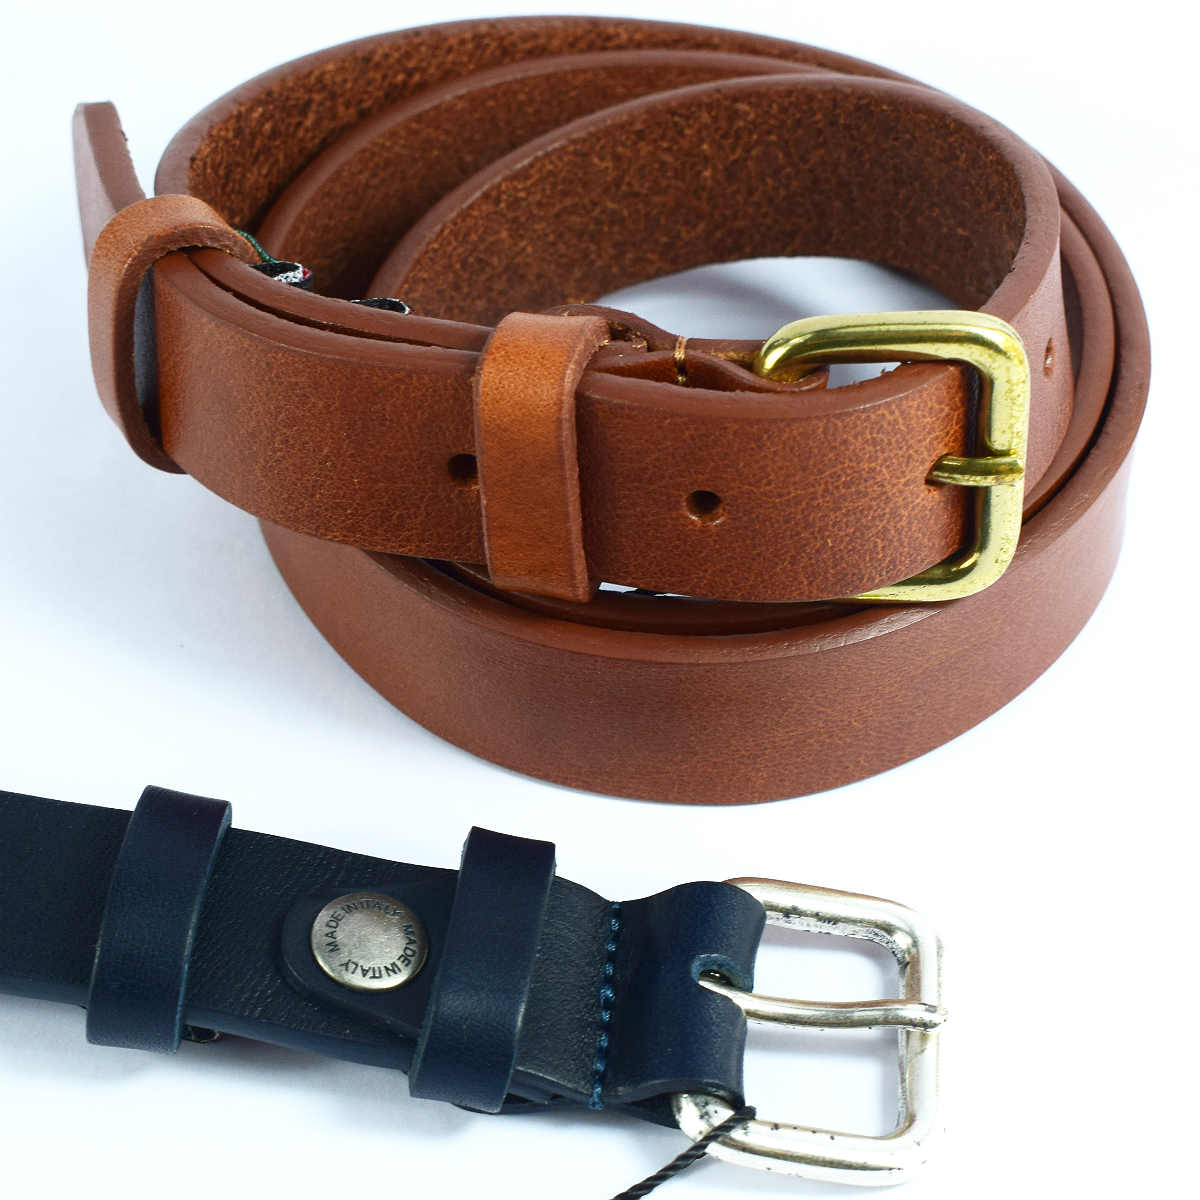 6812125 WOMAN SPORTS BELT by Bottega Fiorentina